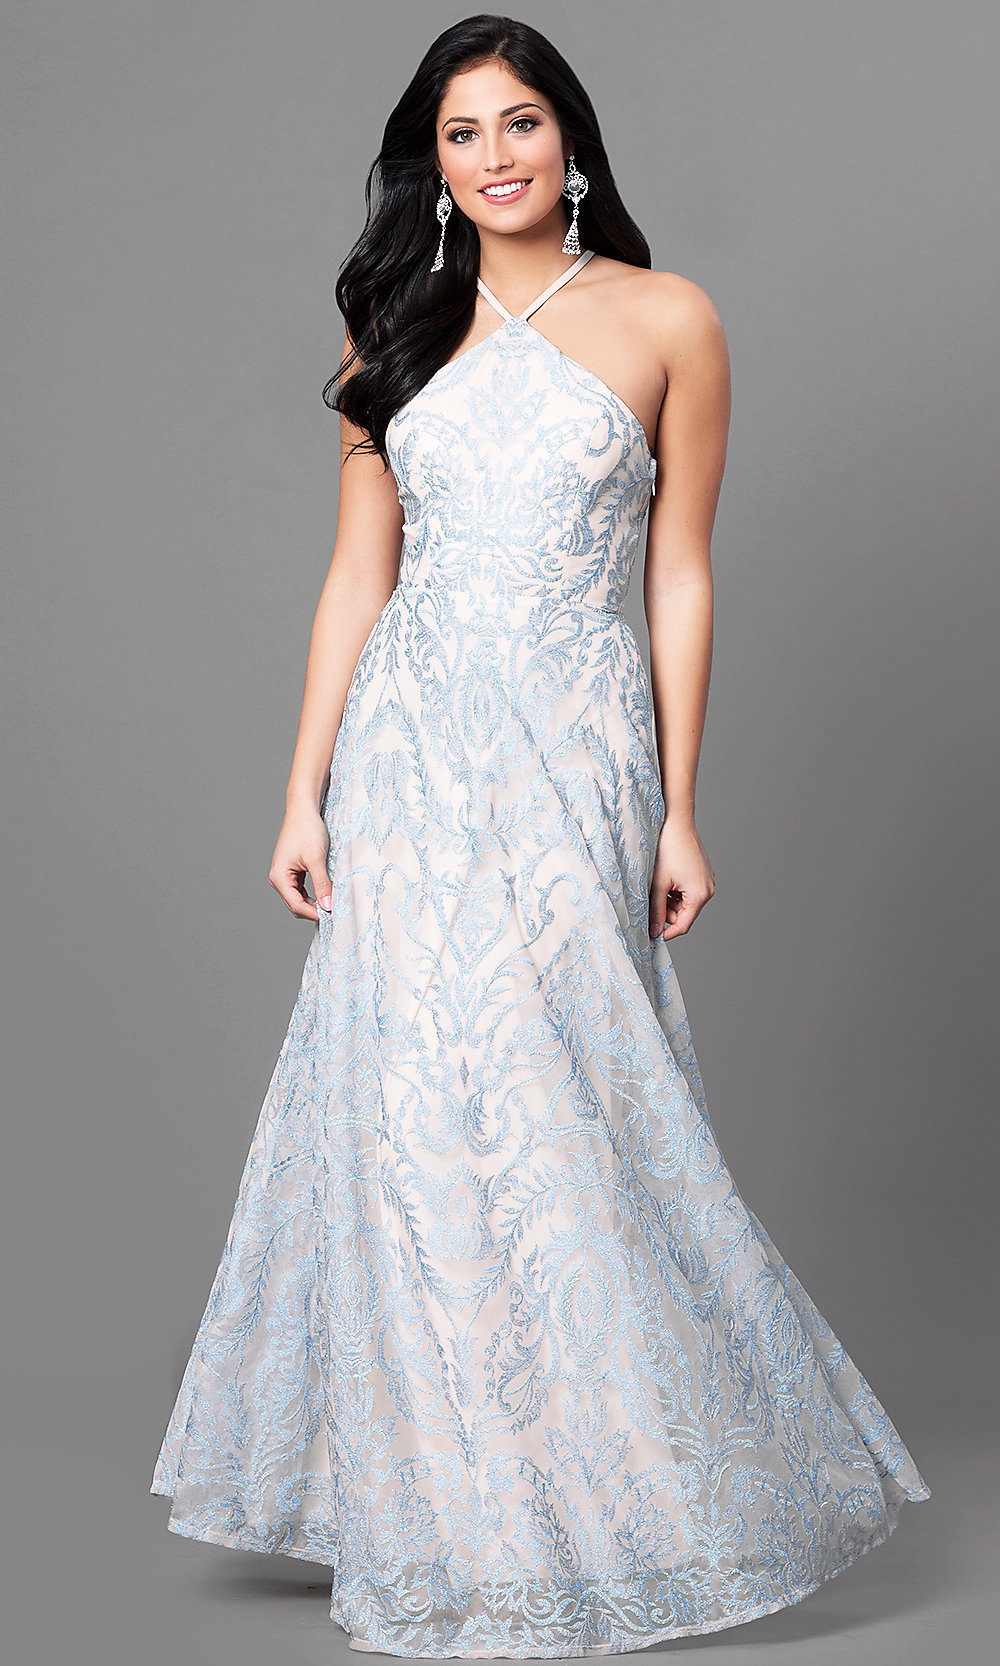 Embroidered Blue Junior-Size Prom Dress - PromGirl